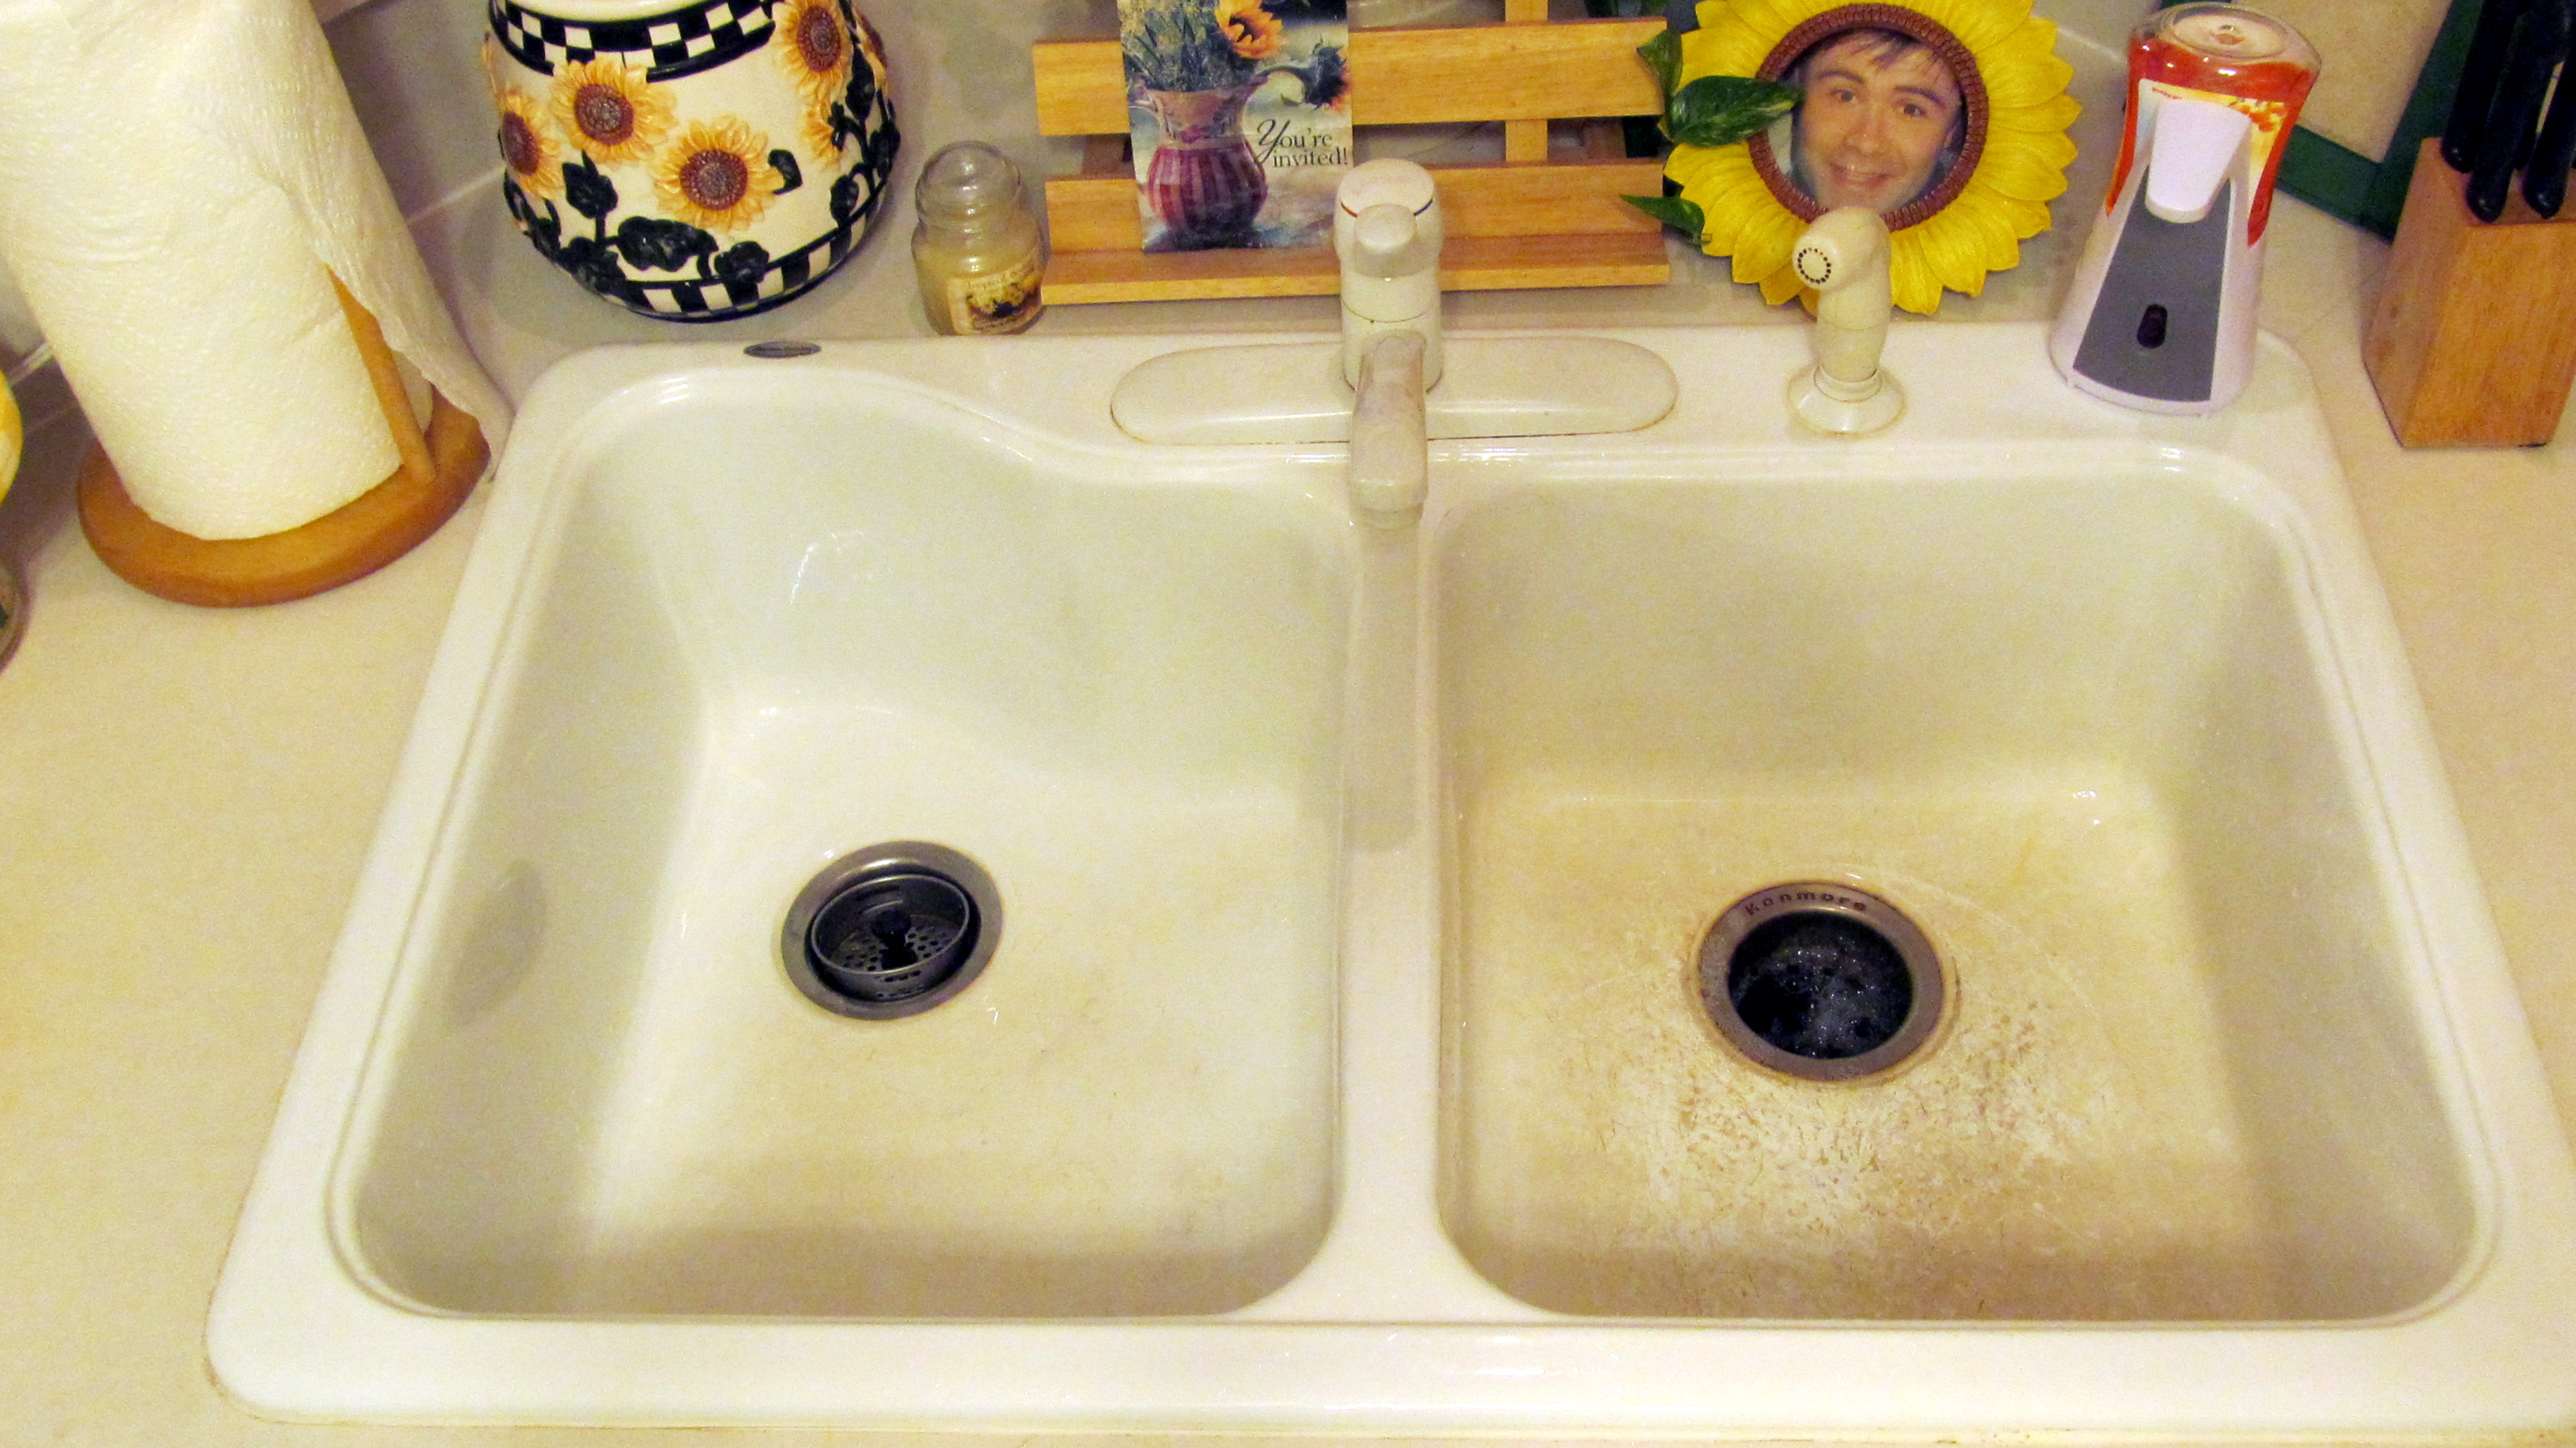 Spring Cleaning: Removing Black Marks from a White Kitchen Sink